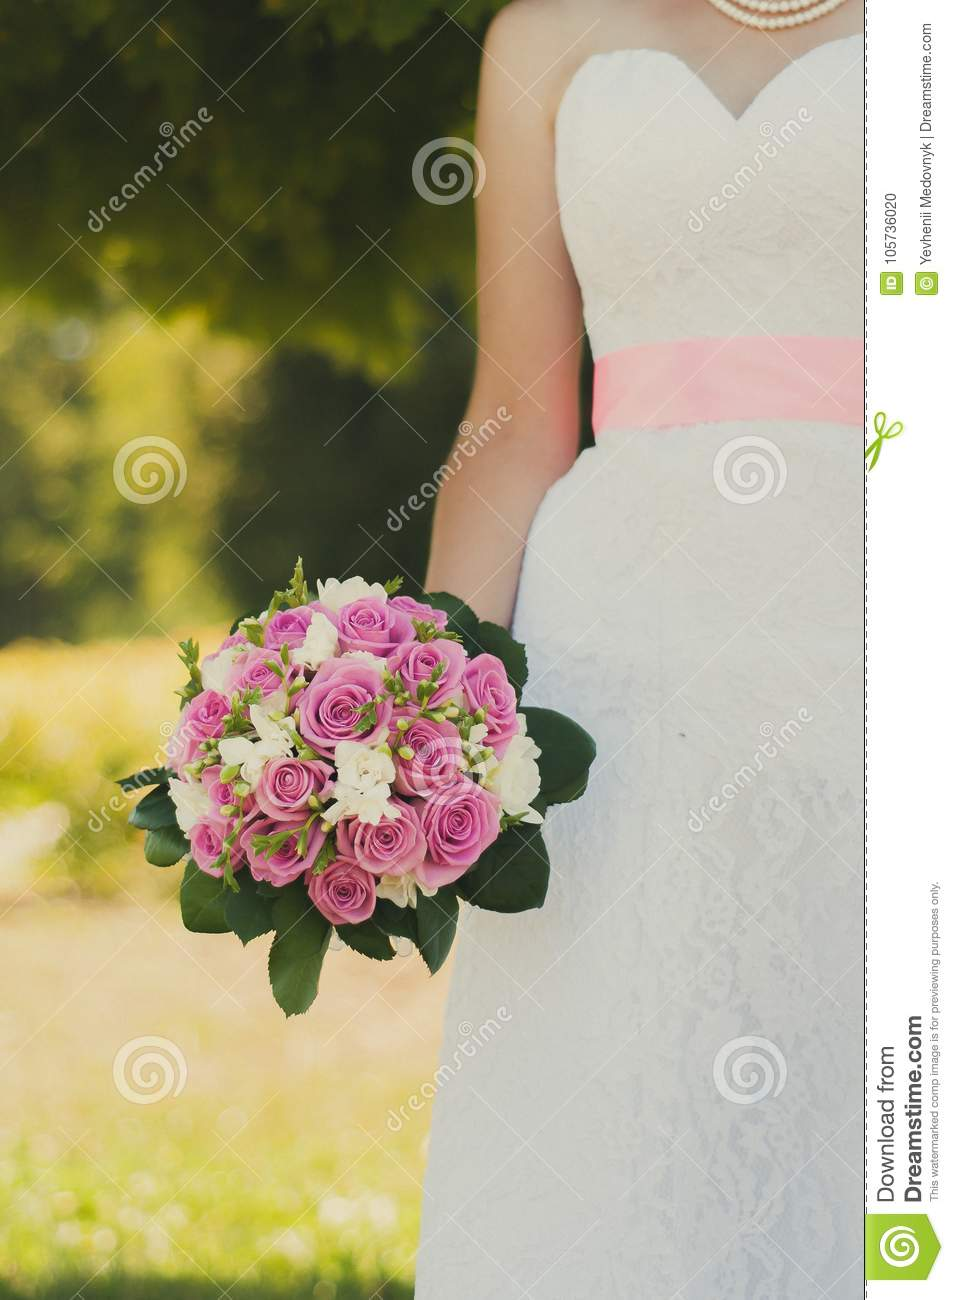 Bride after the wedding ceremony in the sun park holds a beautiful bouquet